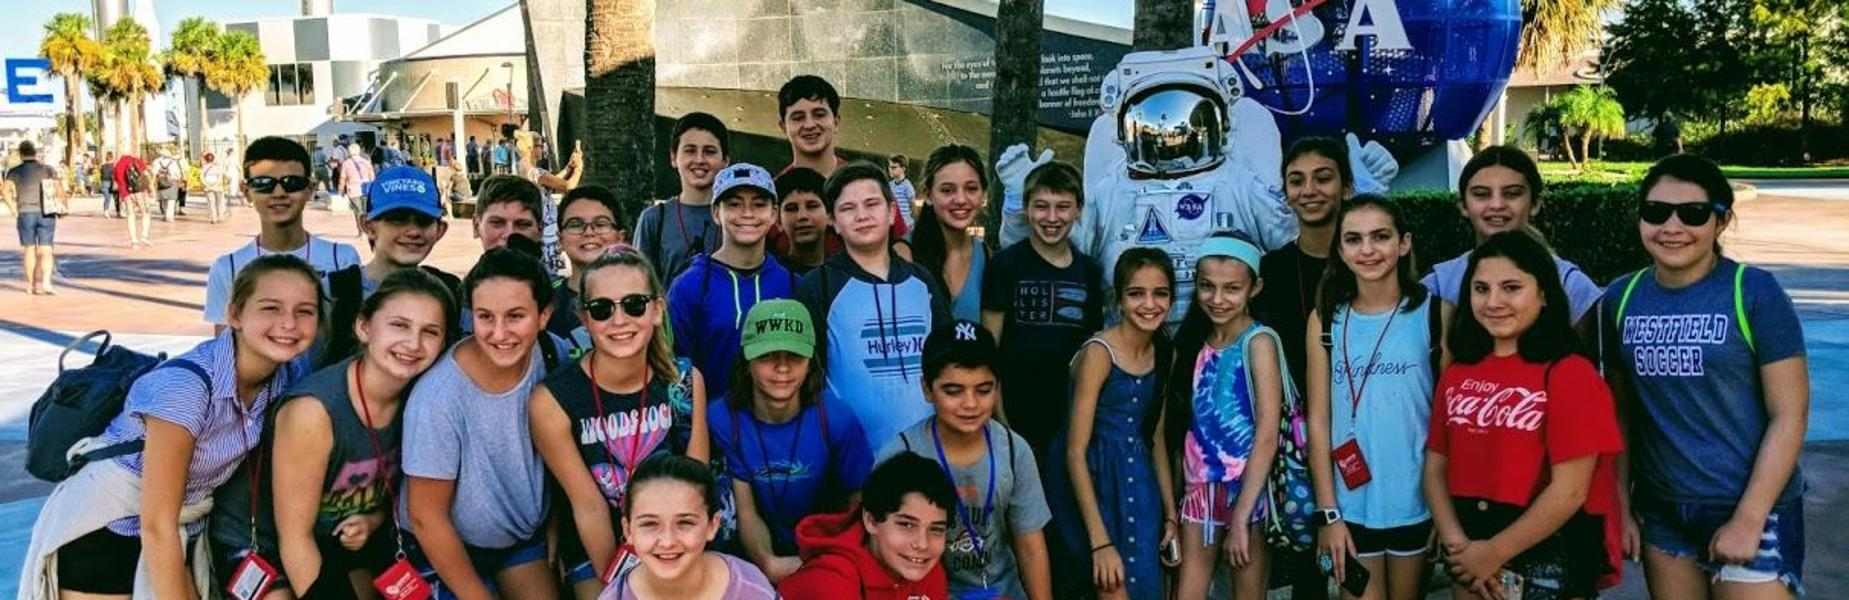 A recent STEM field trip to Florida included a visit to the Kennedy Space Center where 26 seventh graders and four staff members from Edison Intermediate School participated in flight simulators and other programs, visited the rocket garden and launch pads, toured the actual Space Shuttle Atlantis and more.